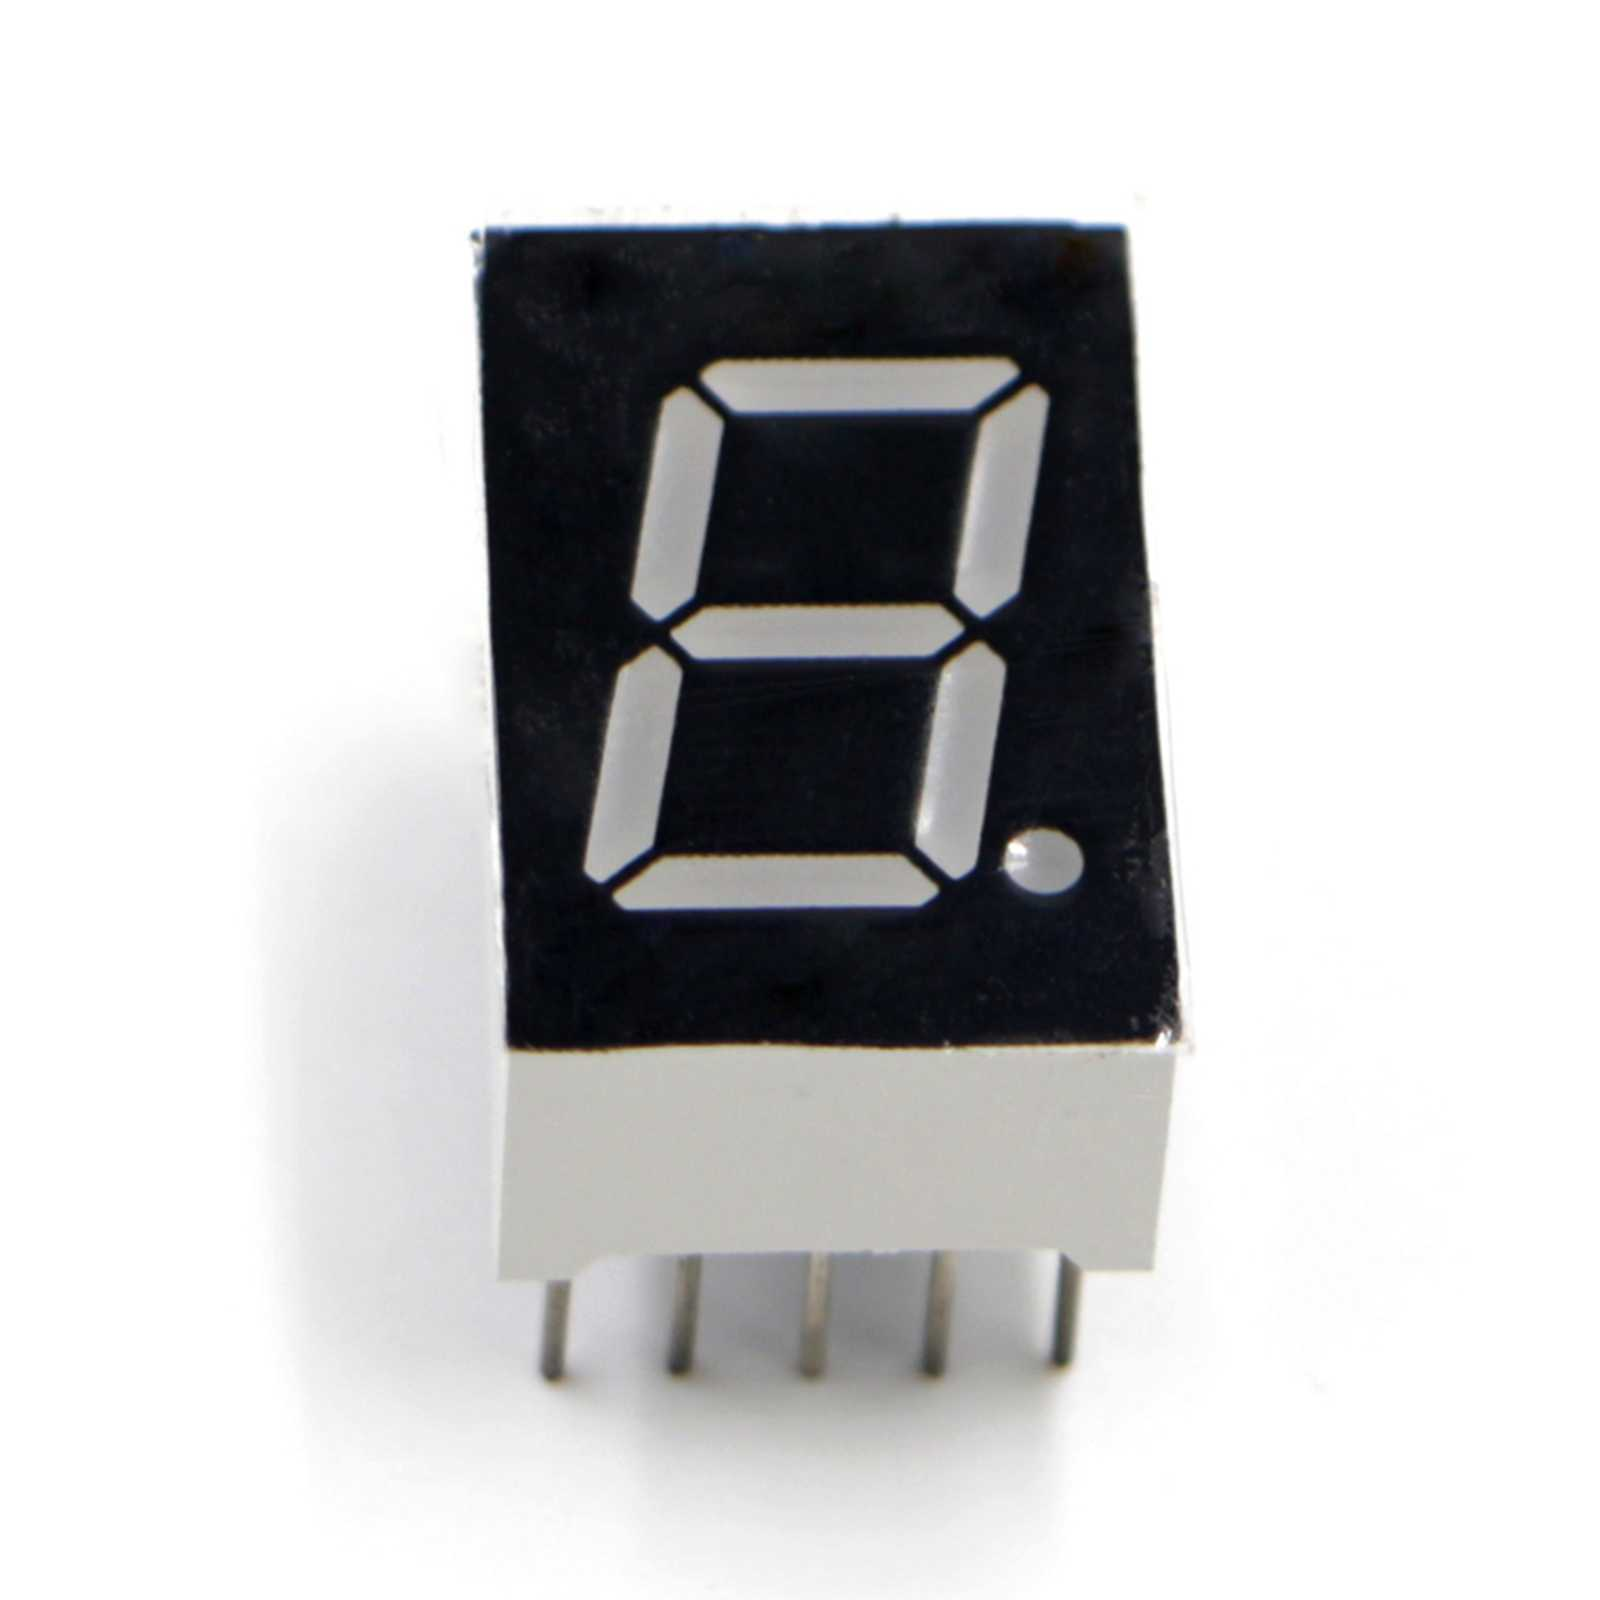 DISPLAY SIMPLES 0.56MM CL5611AB AZUL